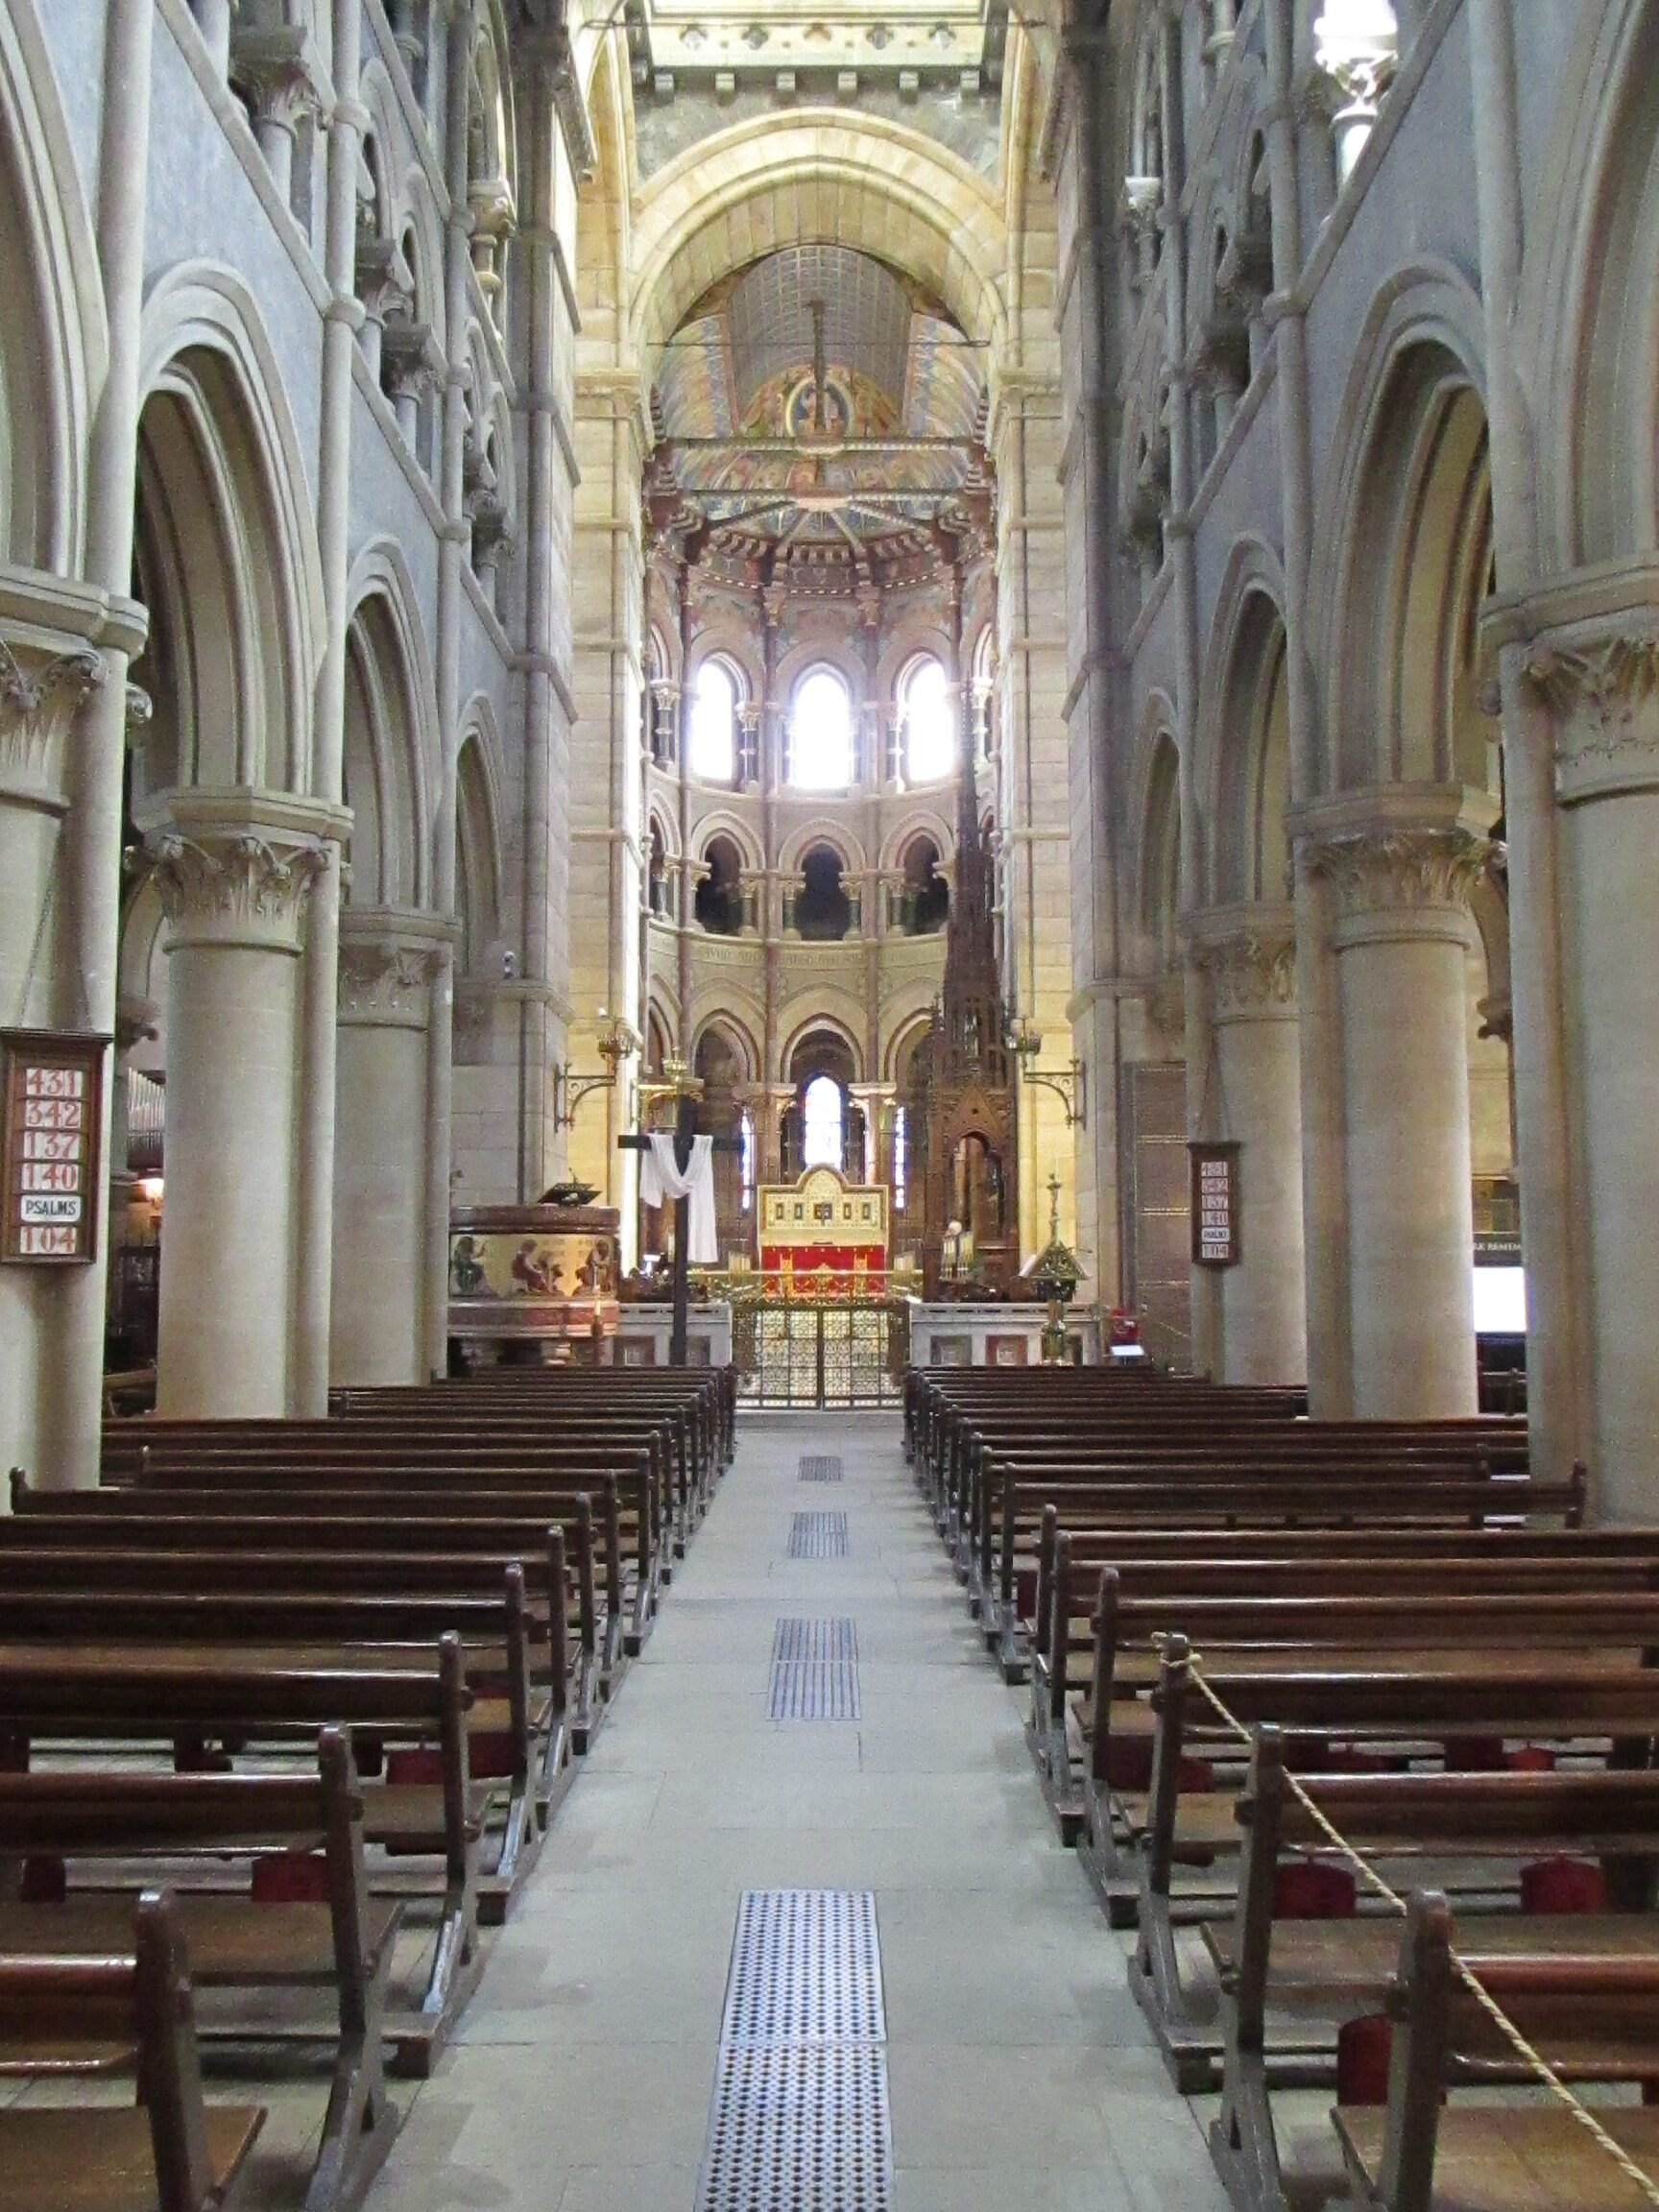 The nave of Saint Fin Barre's Cathedral, Cork